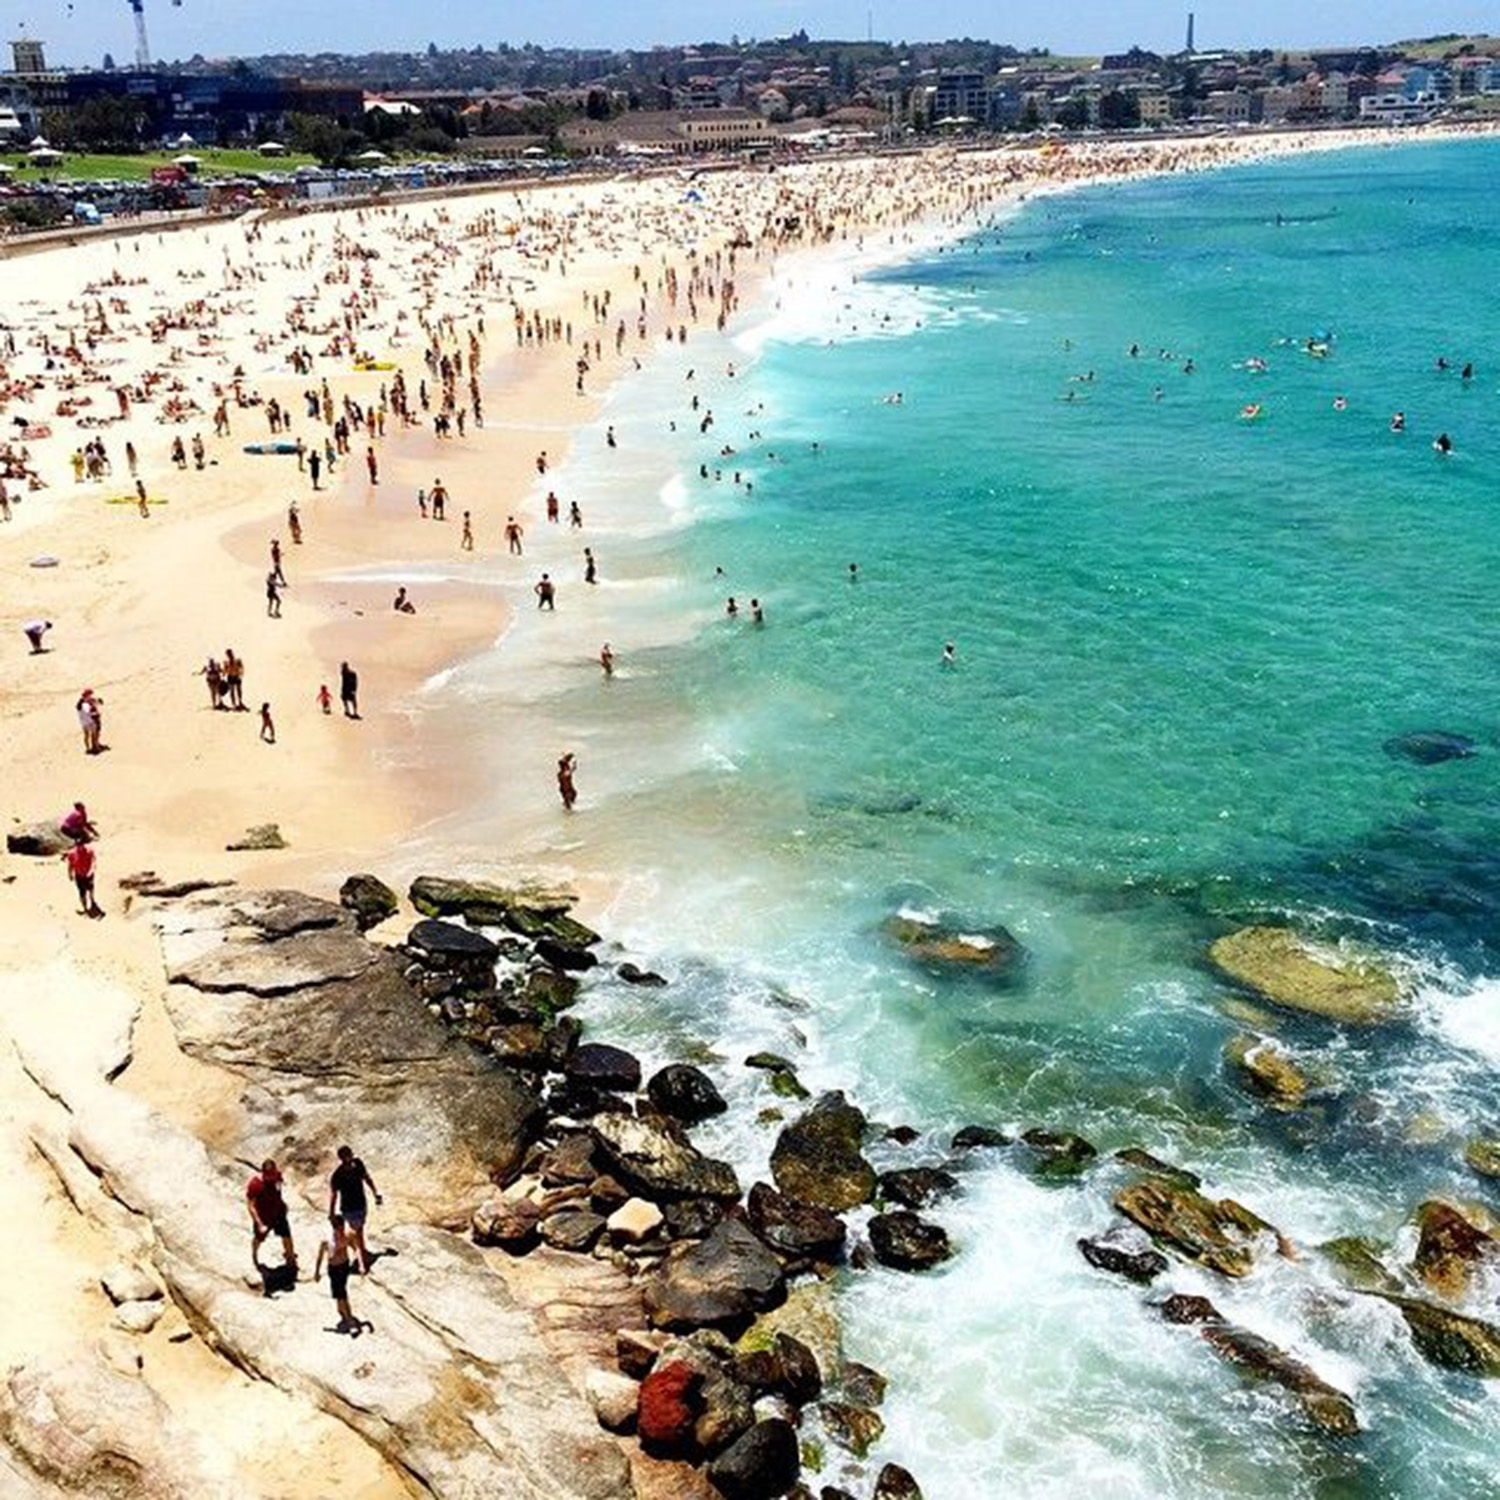 Christmas Day at Bondi sees beachgoers enjoying the sand and sea